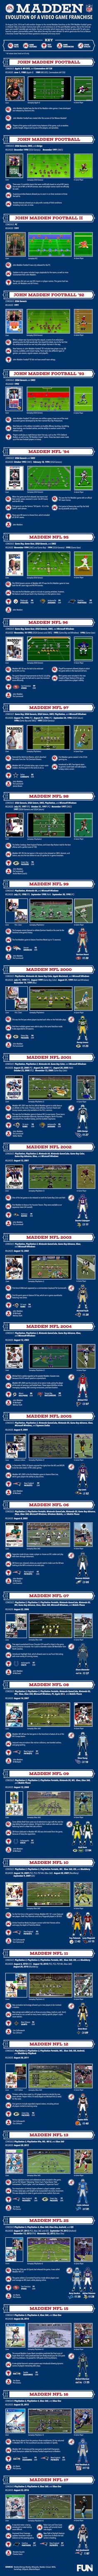 Madden NFL Evolution of a Football Video Game Franchise Infographic